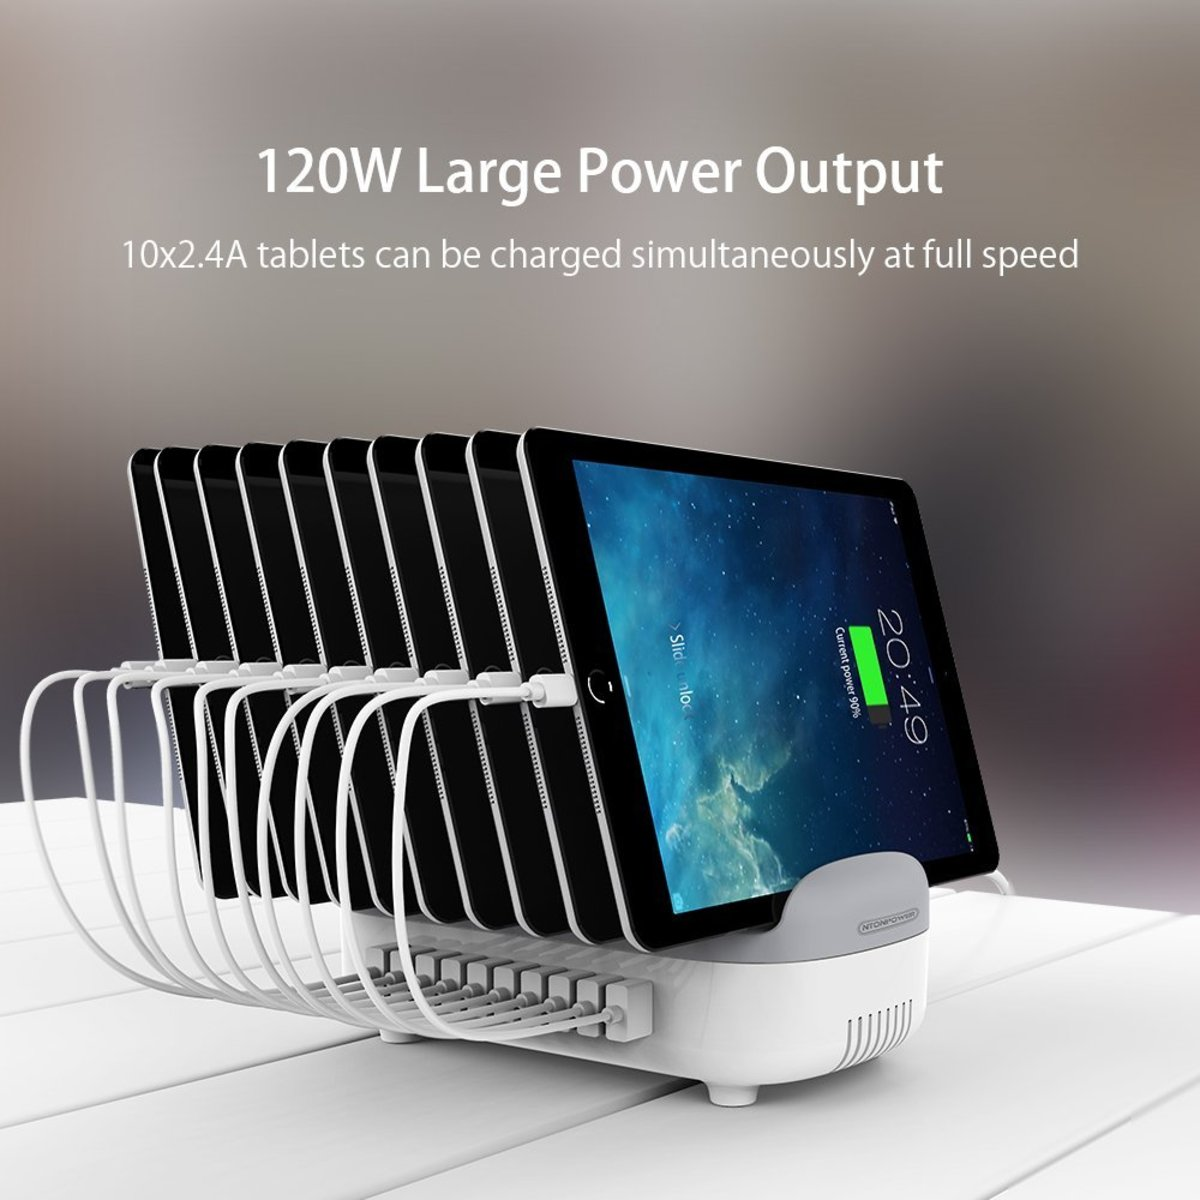 ntonpower-10-port-multiple-charging-station-review